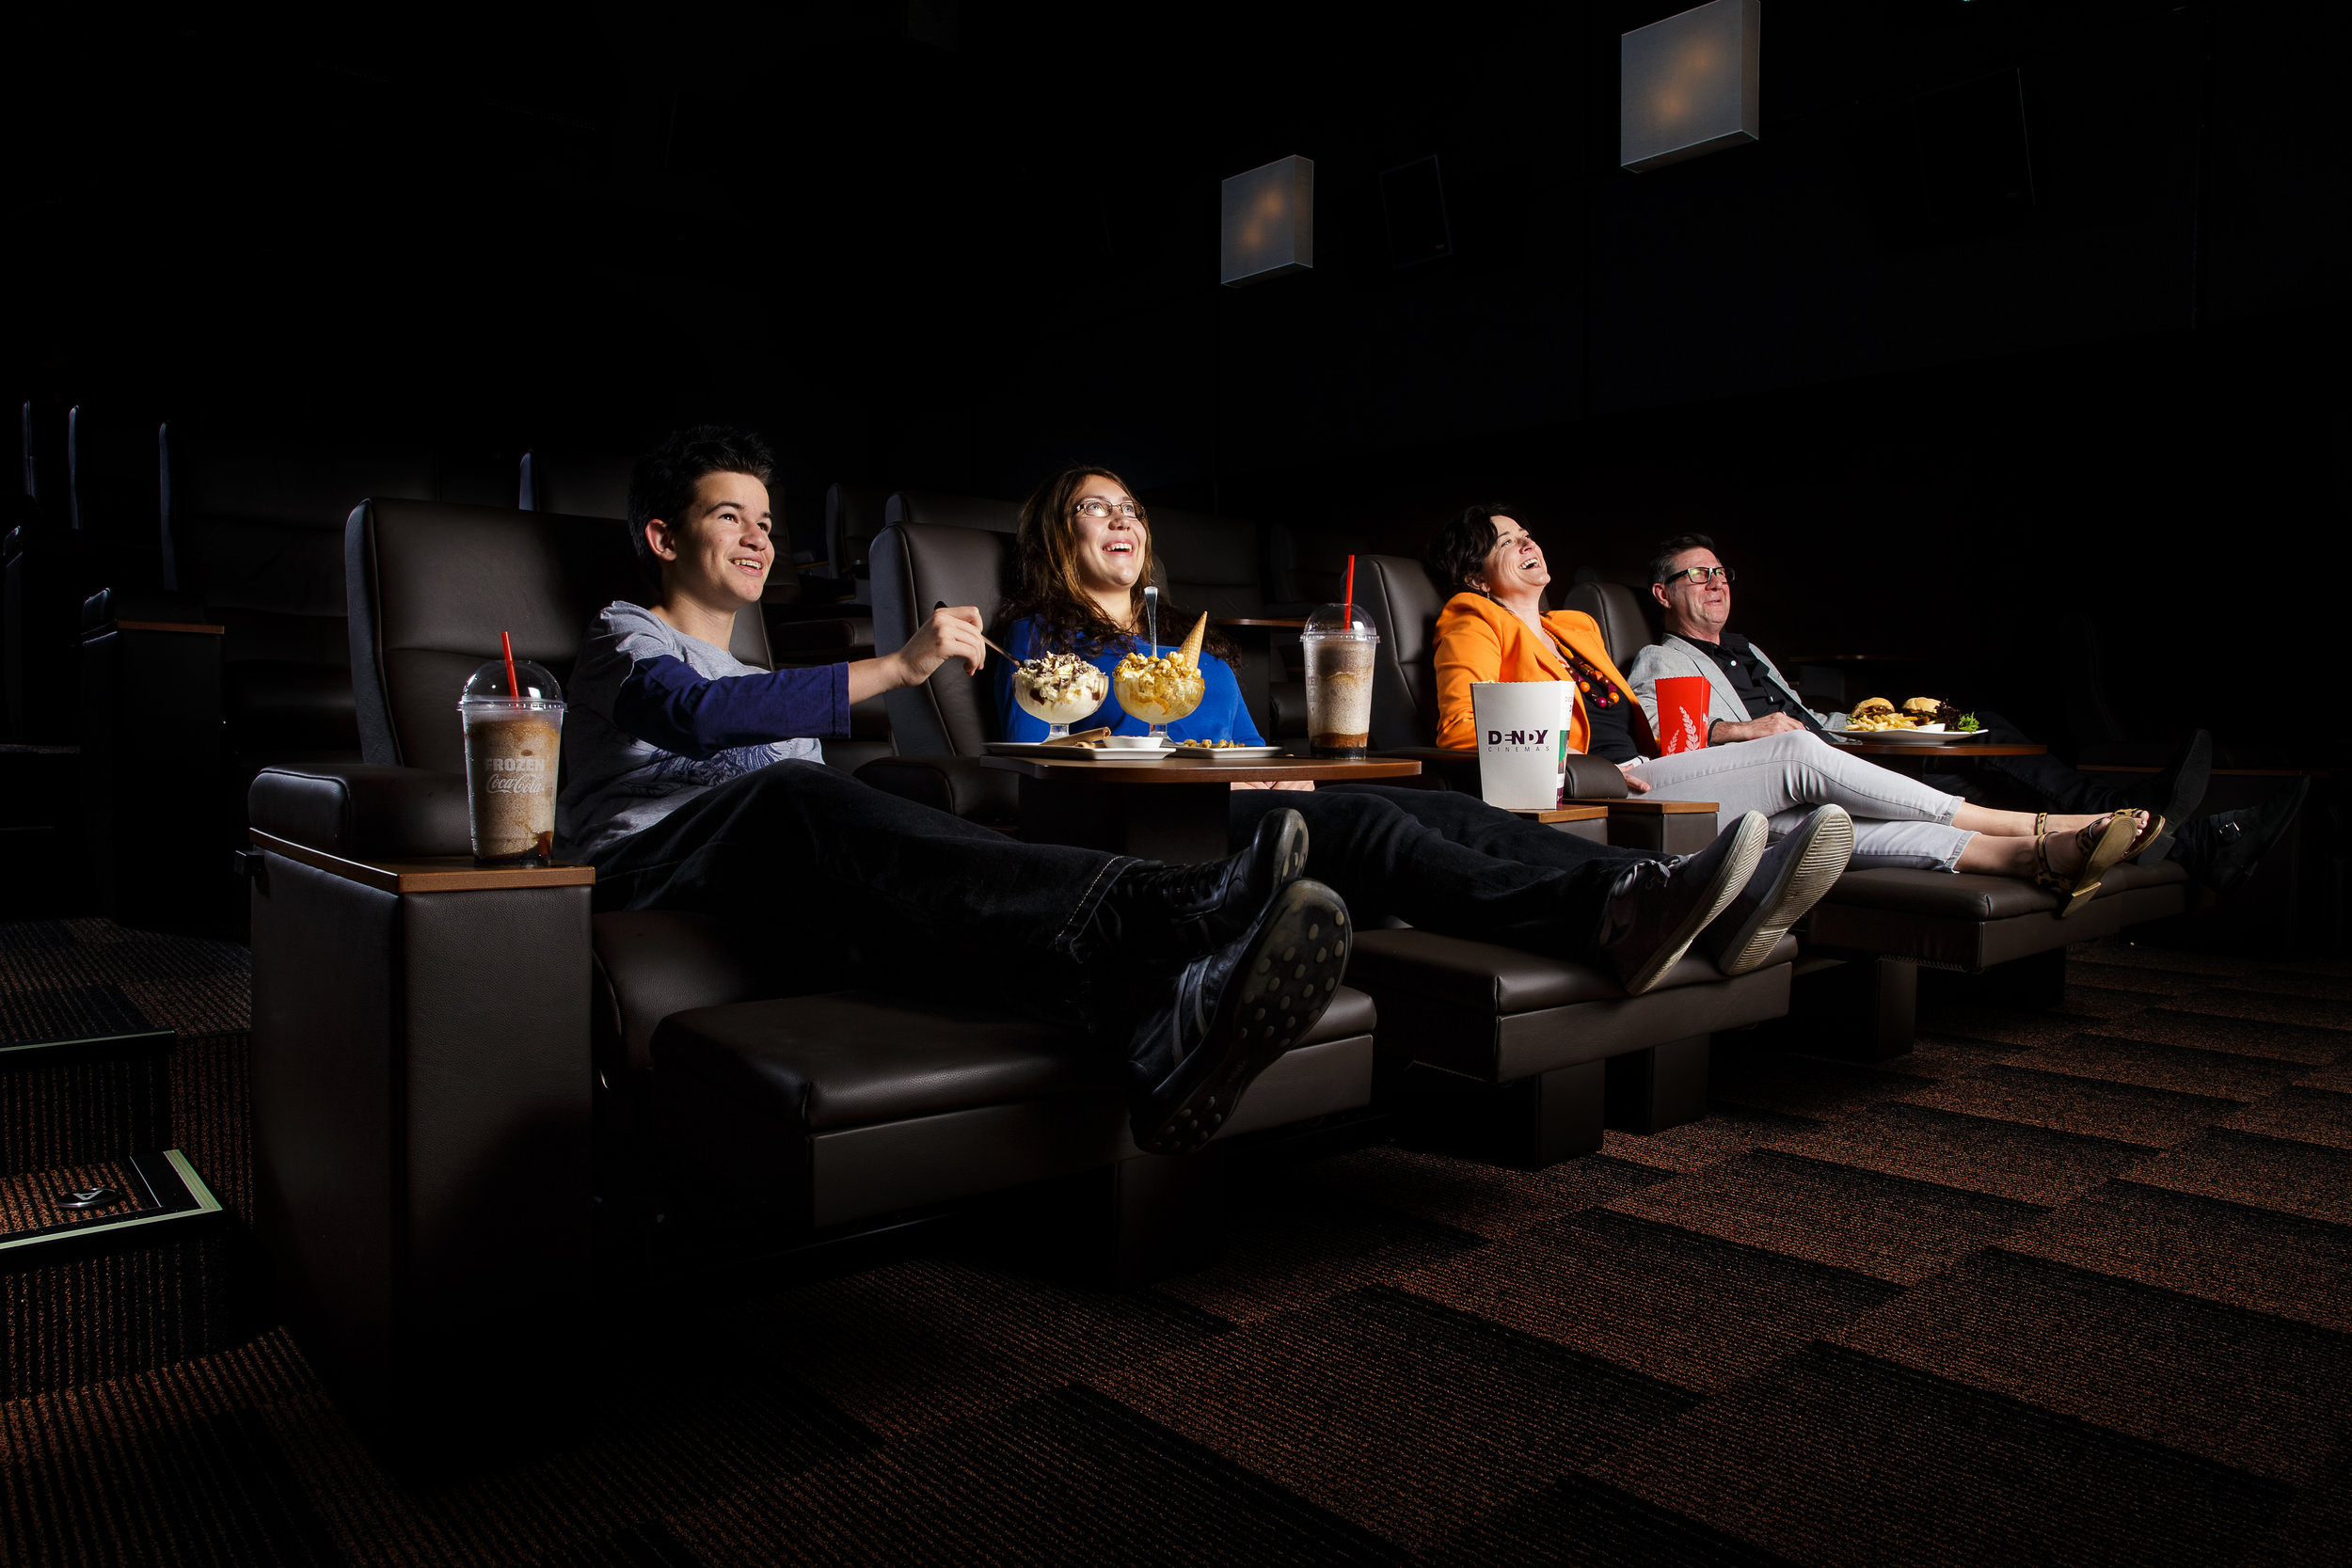 Premium cinema seating leather chairs and fine food with family enjoying a movie